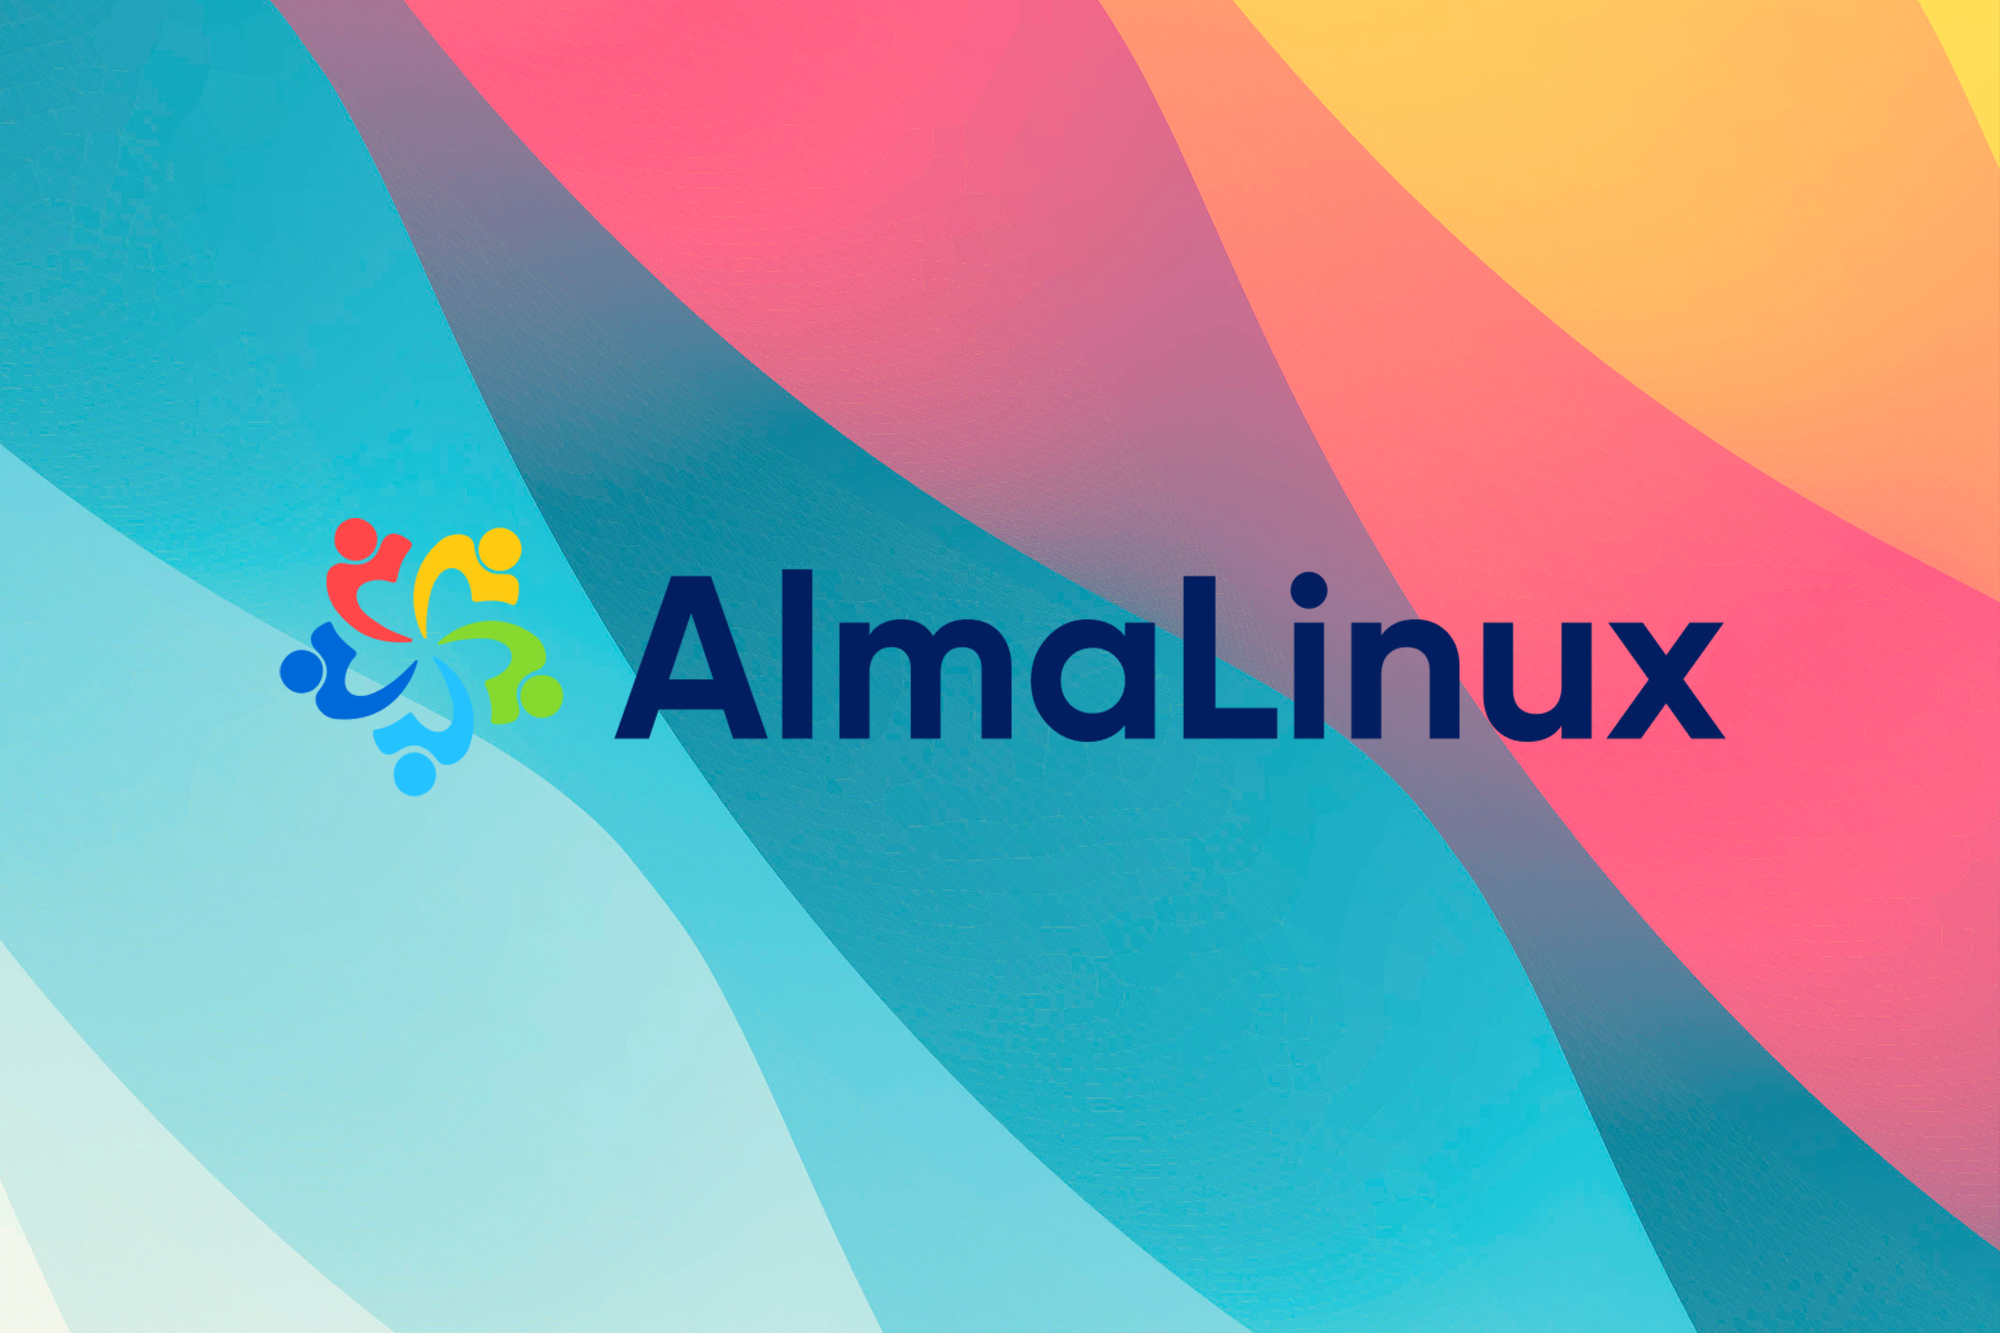 AlmaLinux is here and it's ready for testing